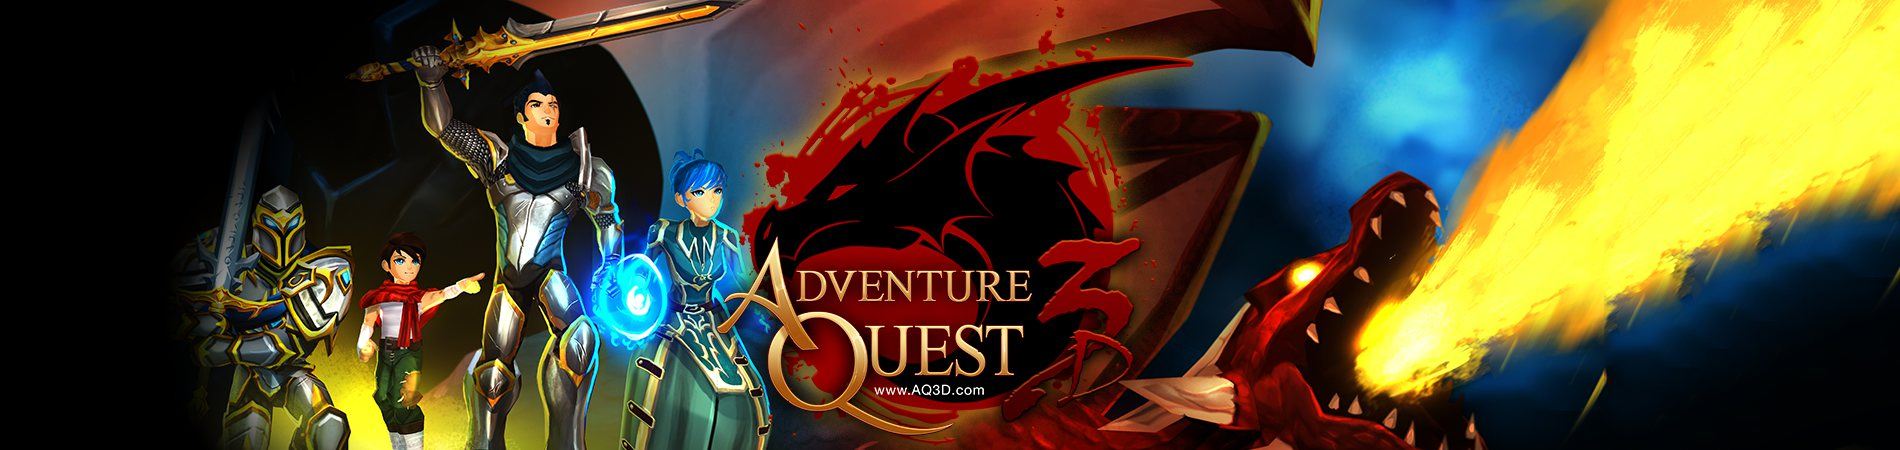 AdventureQuest 3D Mobile Game Post